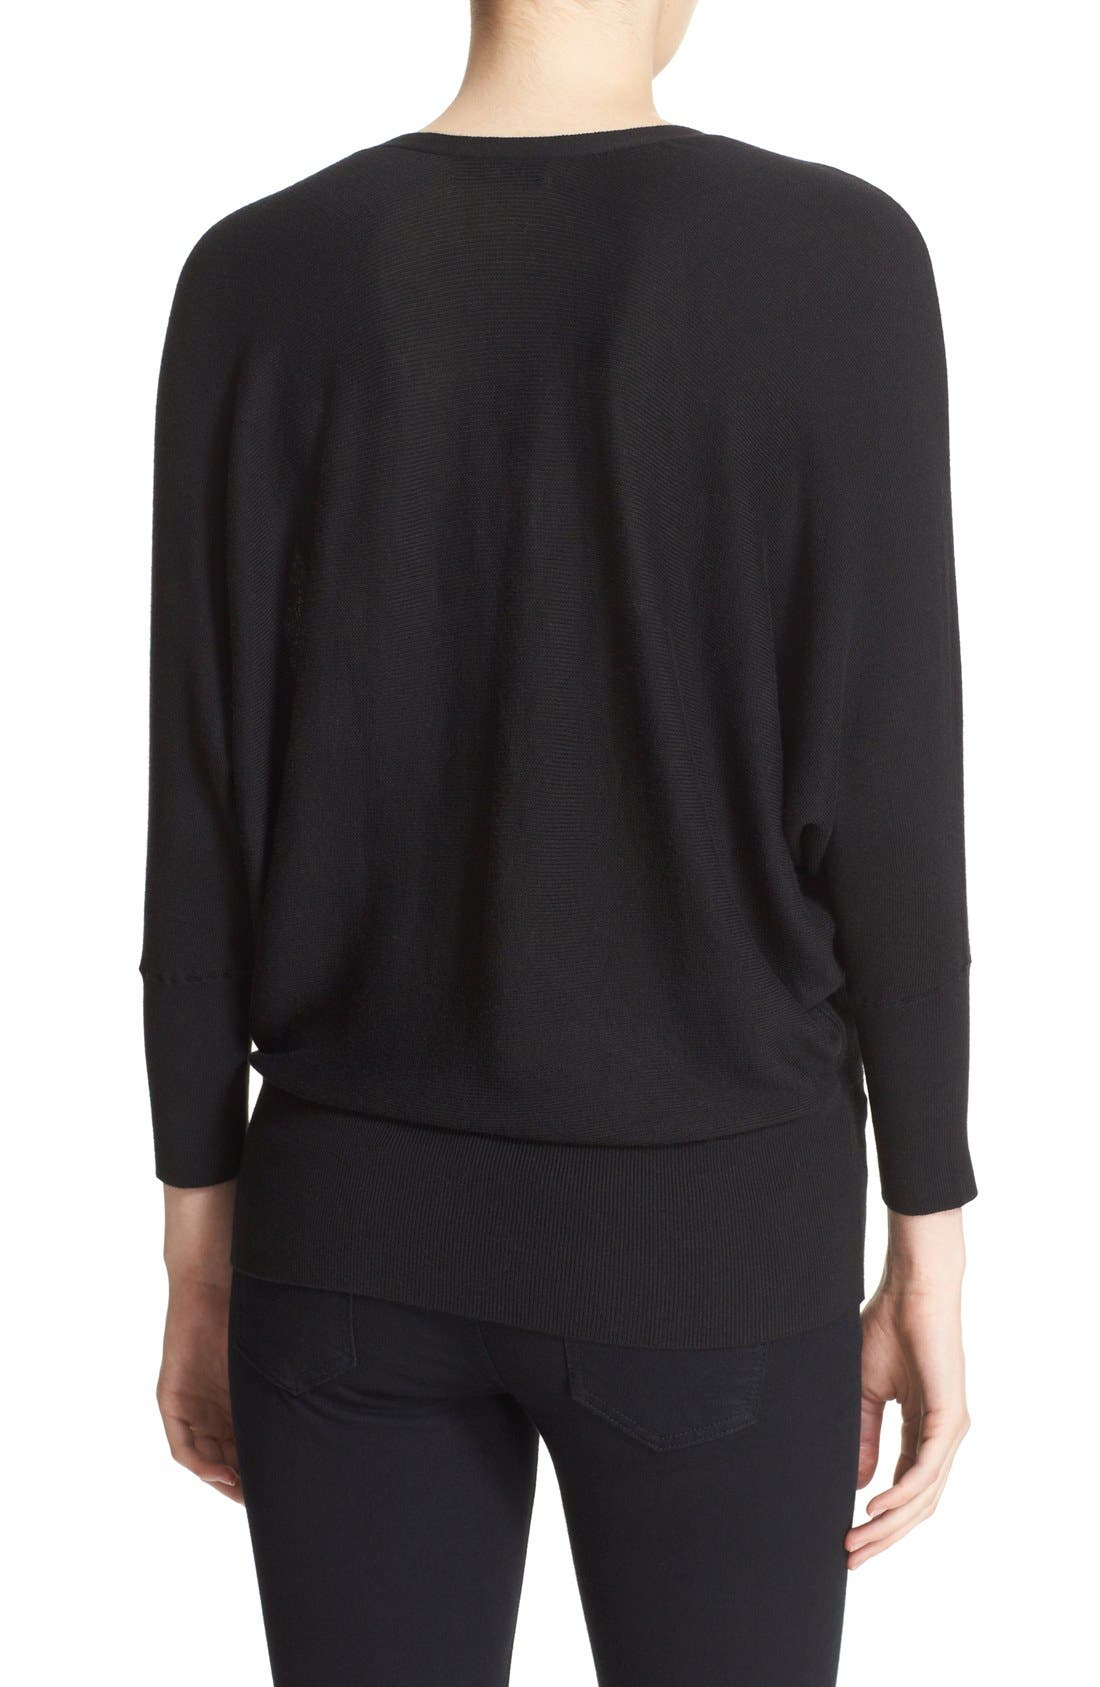 MILLY,                             Convertible Wrap Sweater,                             Alternate thumbnail 5, color,                             001